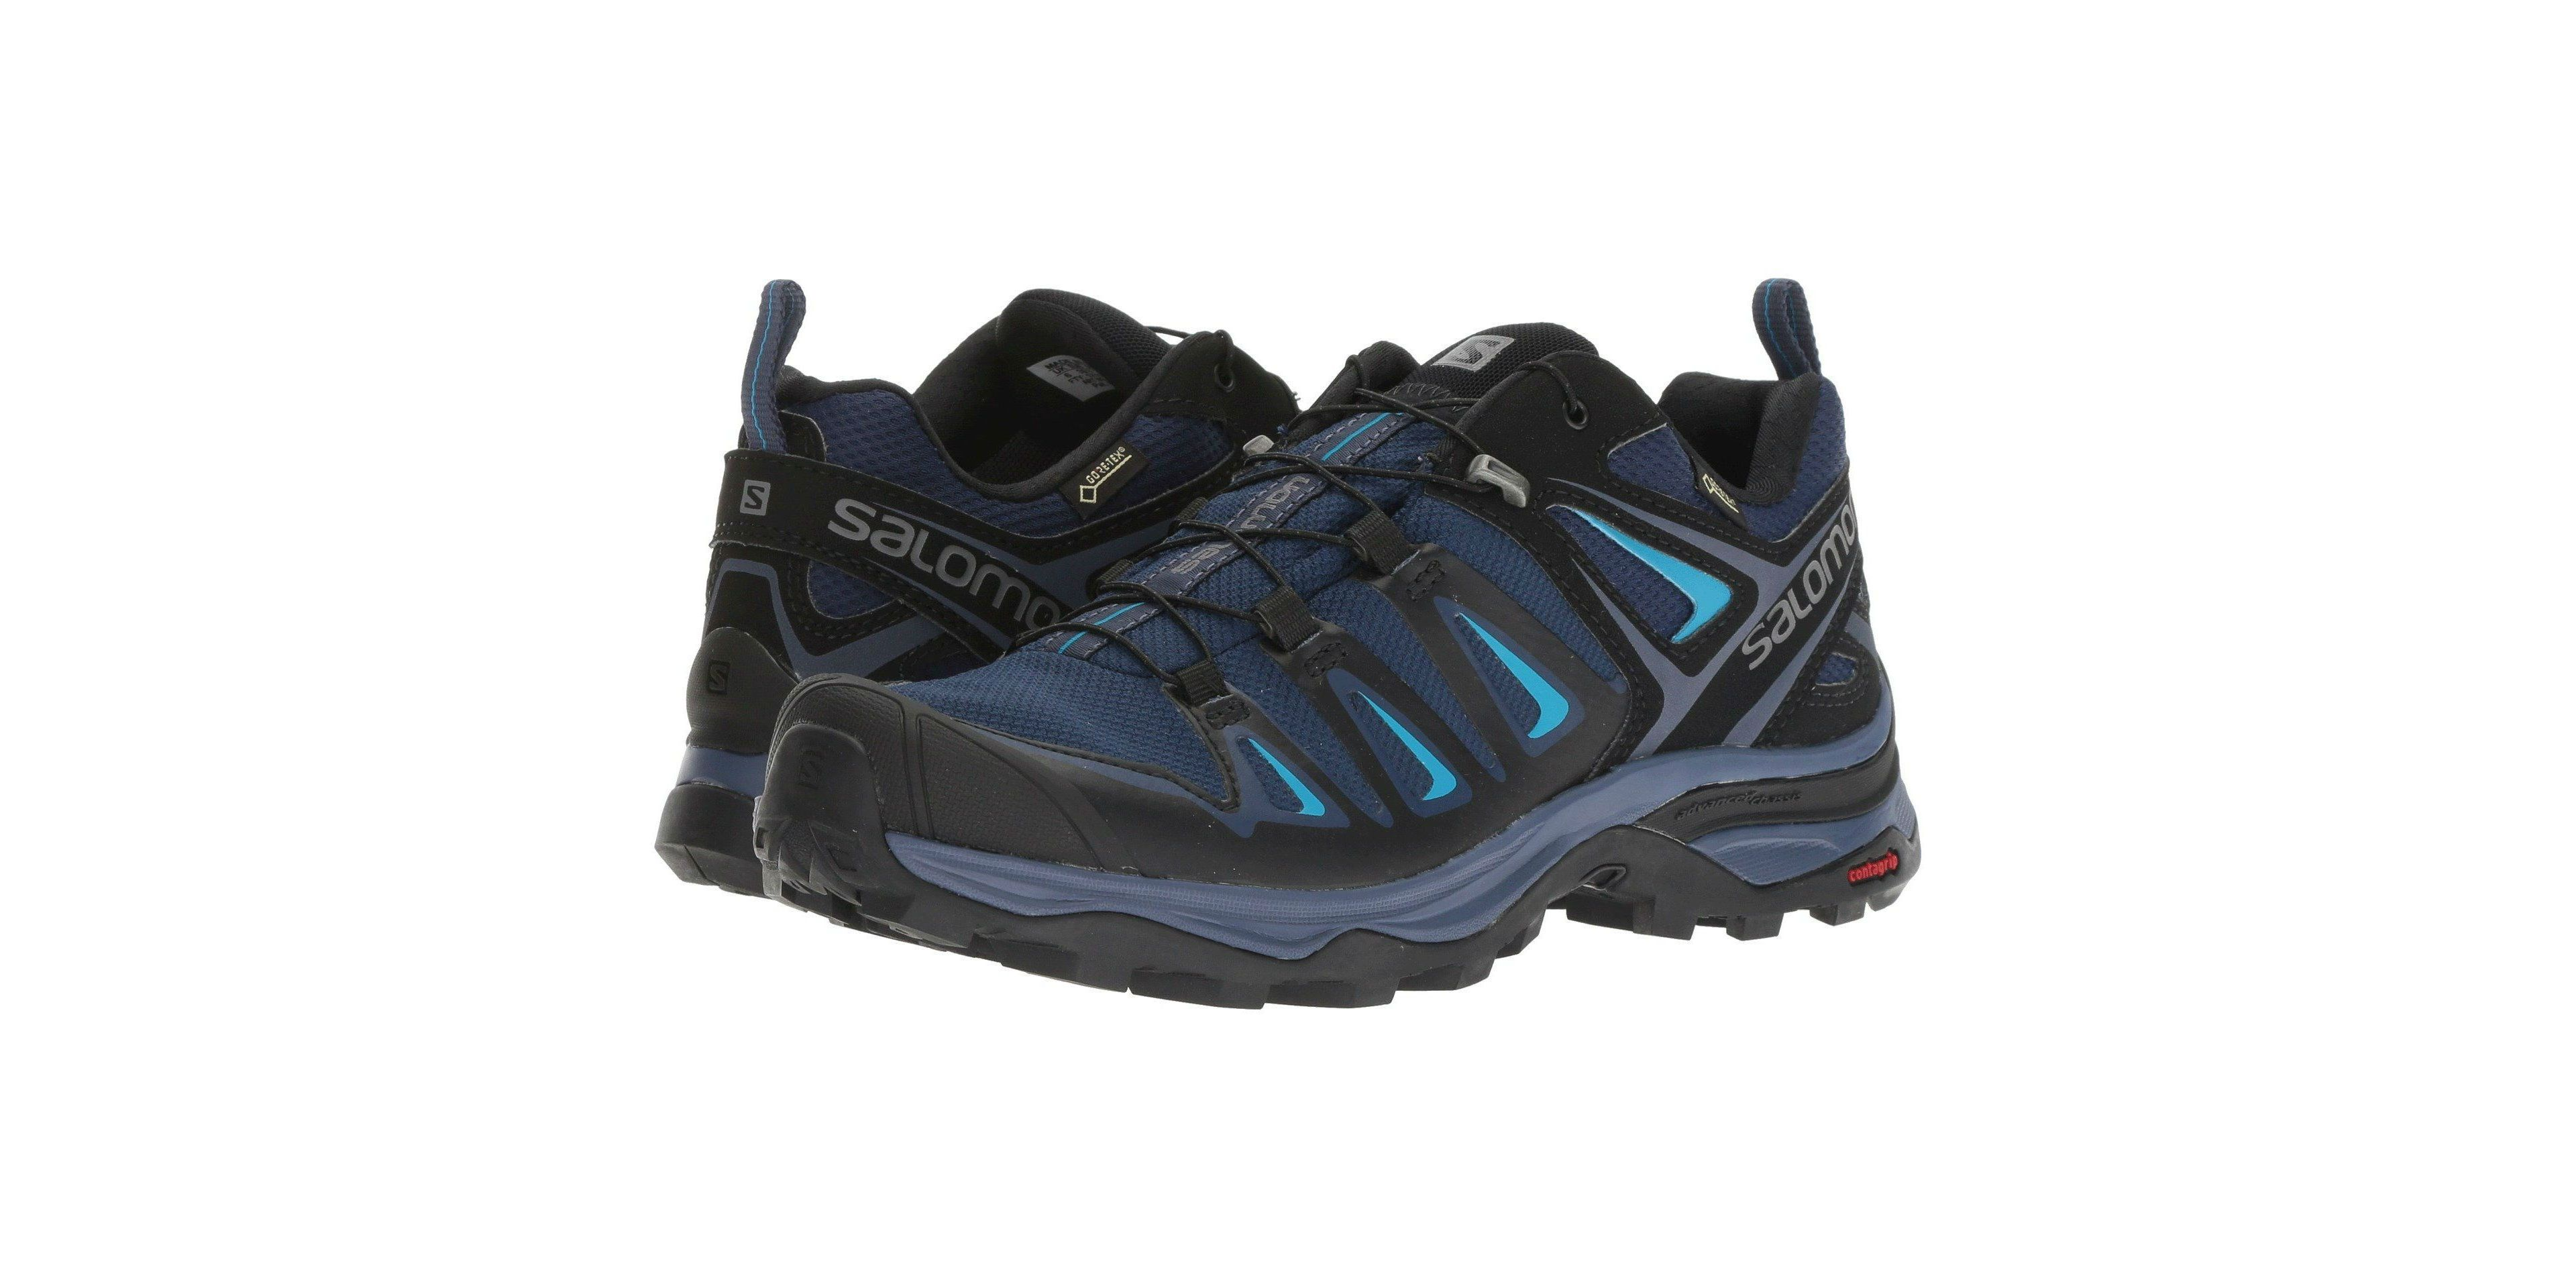 ec59f8f8 Best Hiking Boots 2019 | New Hiking Boots and Trail Running Shoes